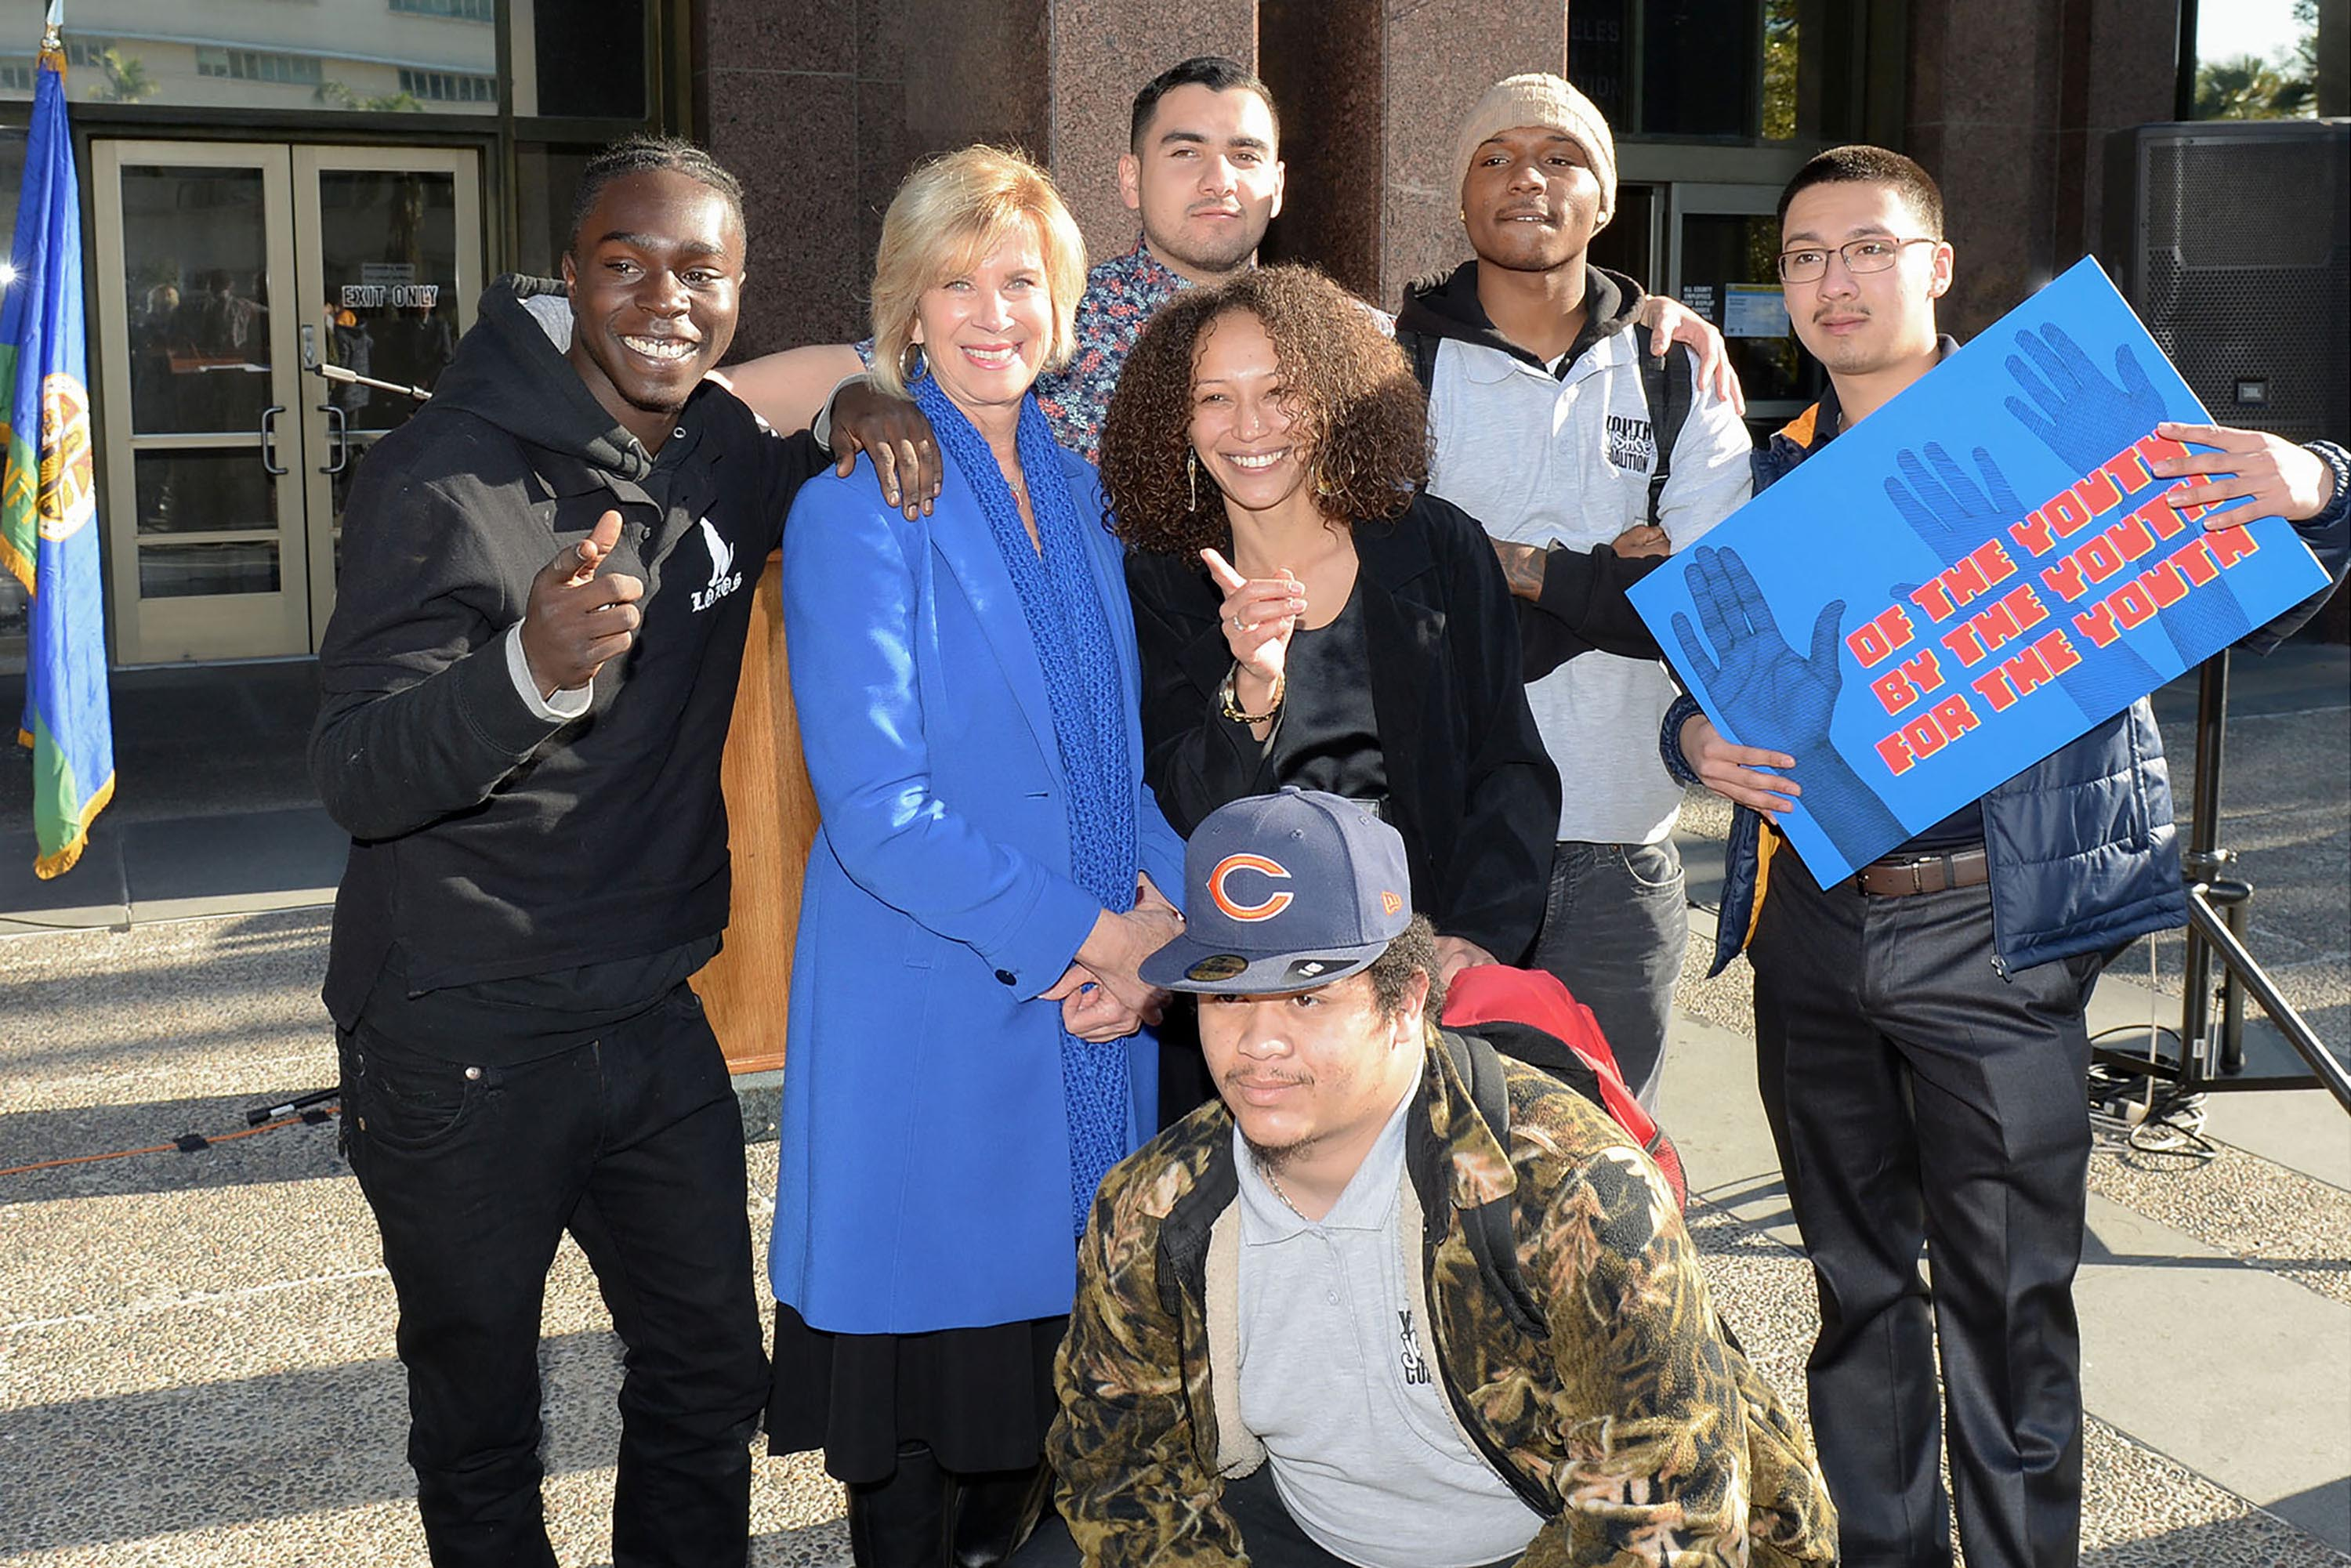 District 4 – Supervisor Janice Hahn<br> <b>Feb. 4, 2020 – Youth Commission Press Conference. </b><br> <i>Photo by Martin Zamora / Board of Supervisors</i>